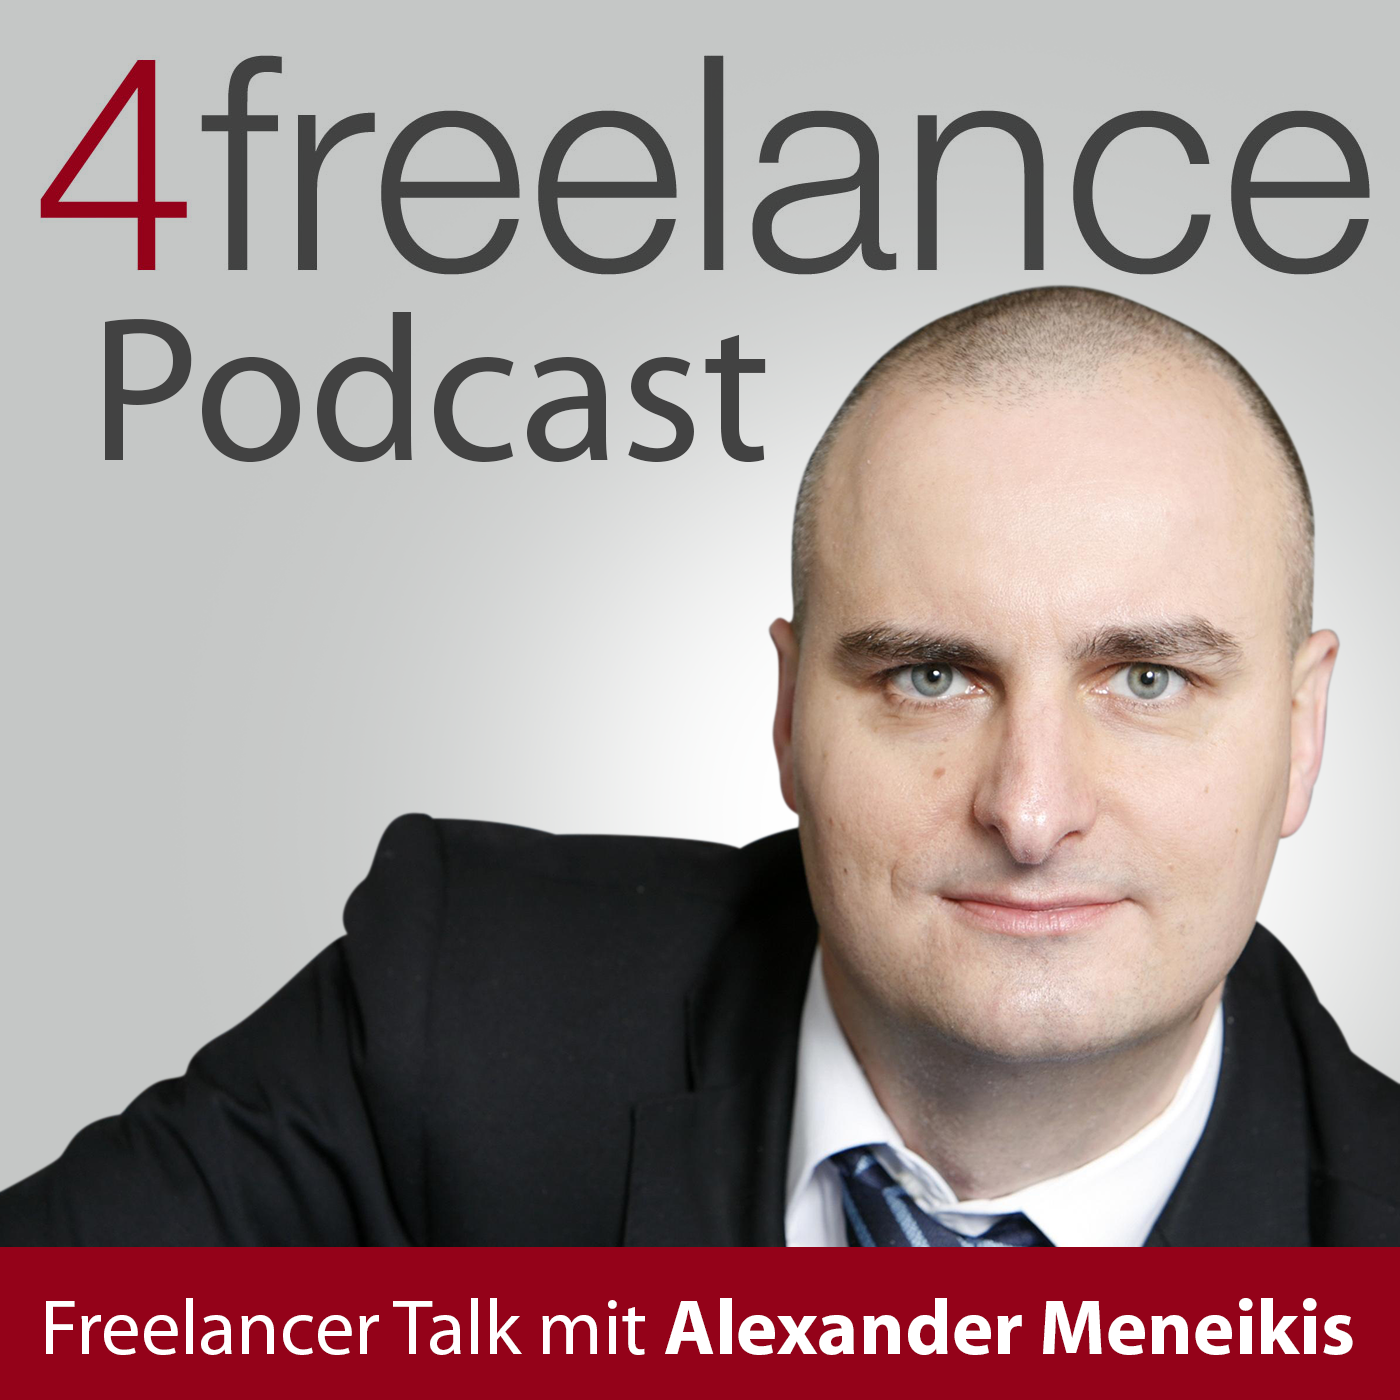 Freelancer Talk | 4freelance Podcast